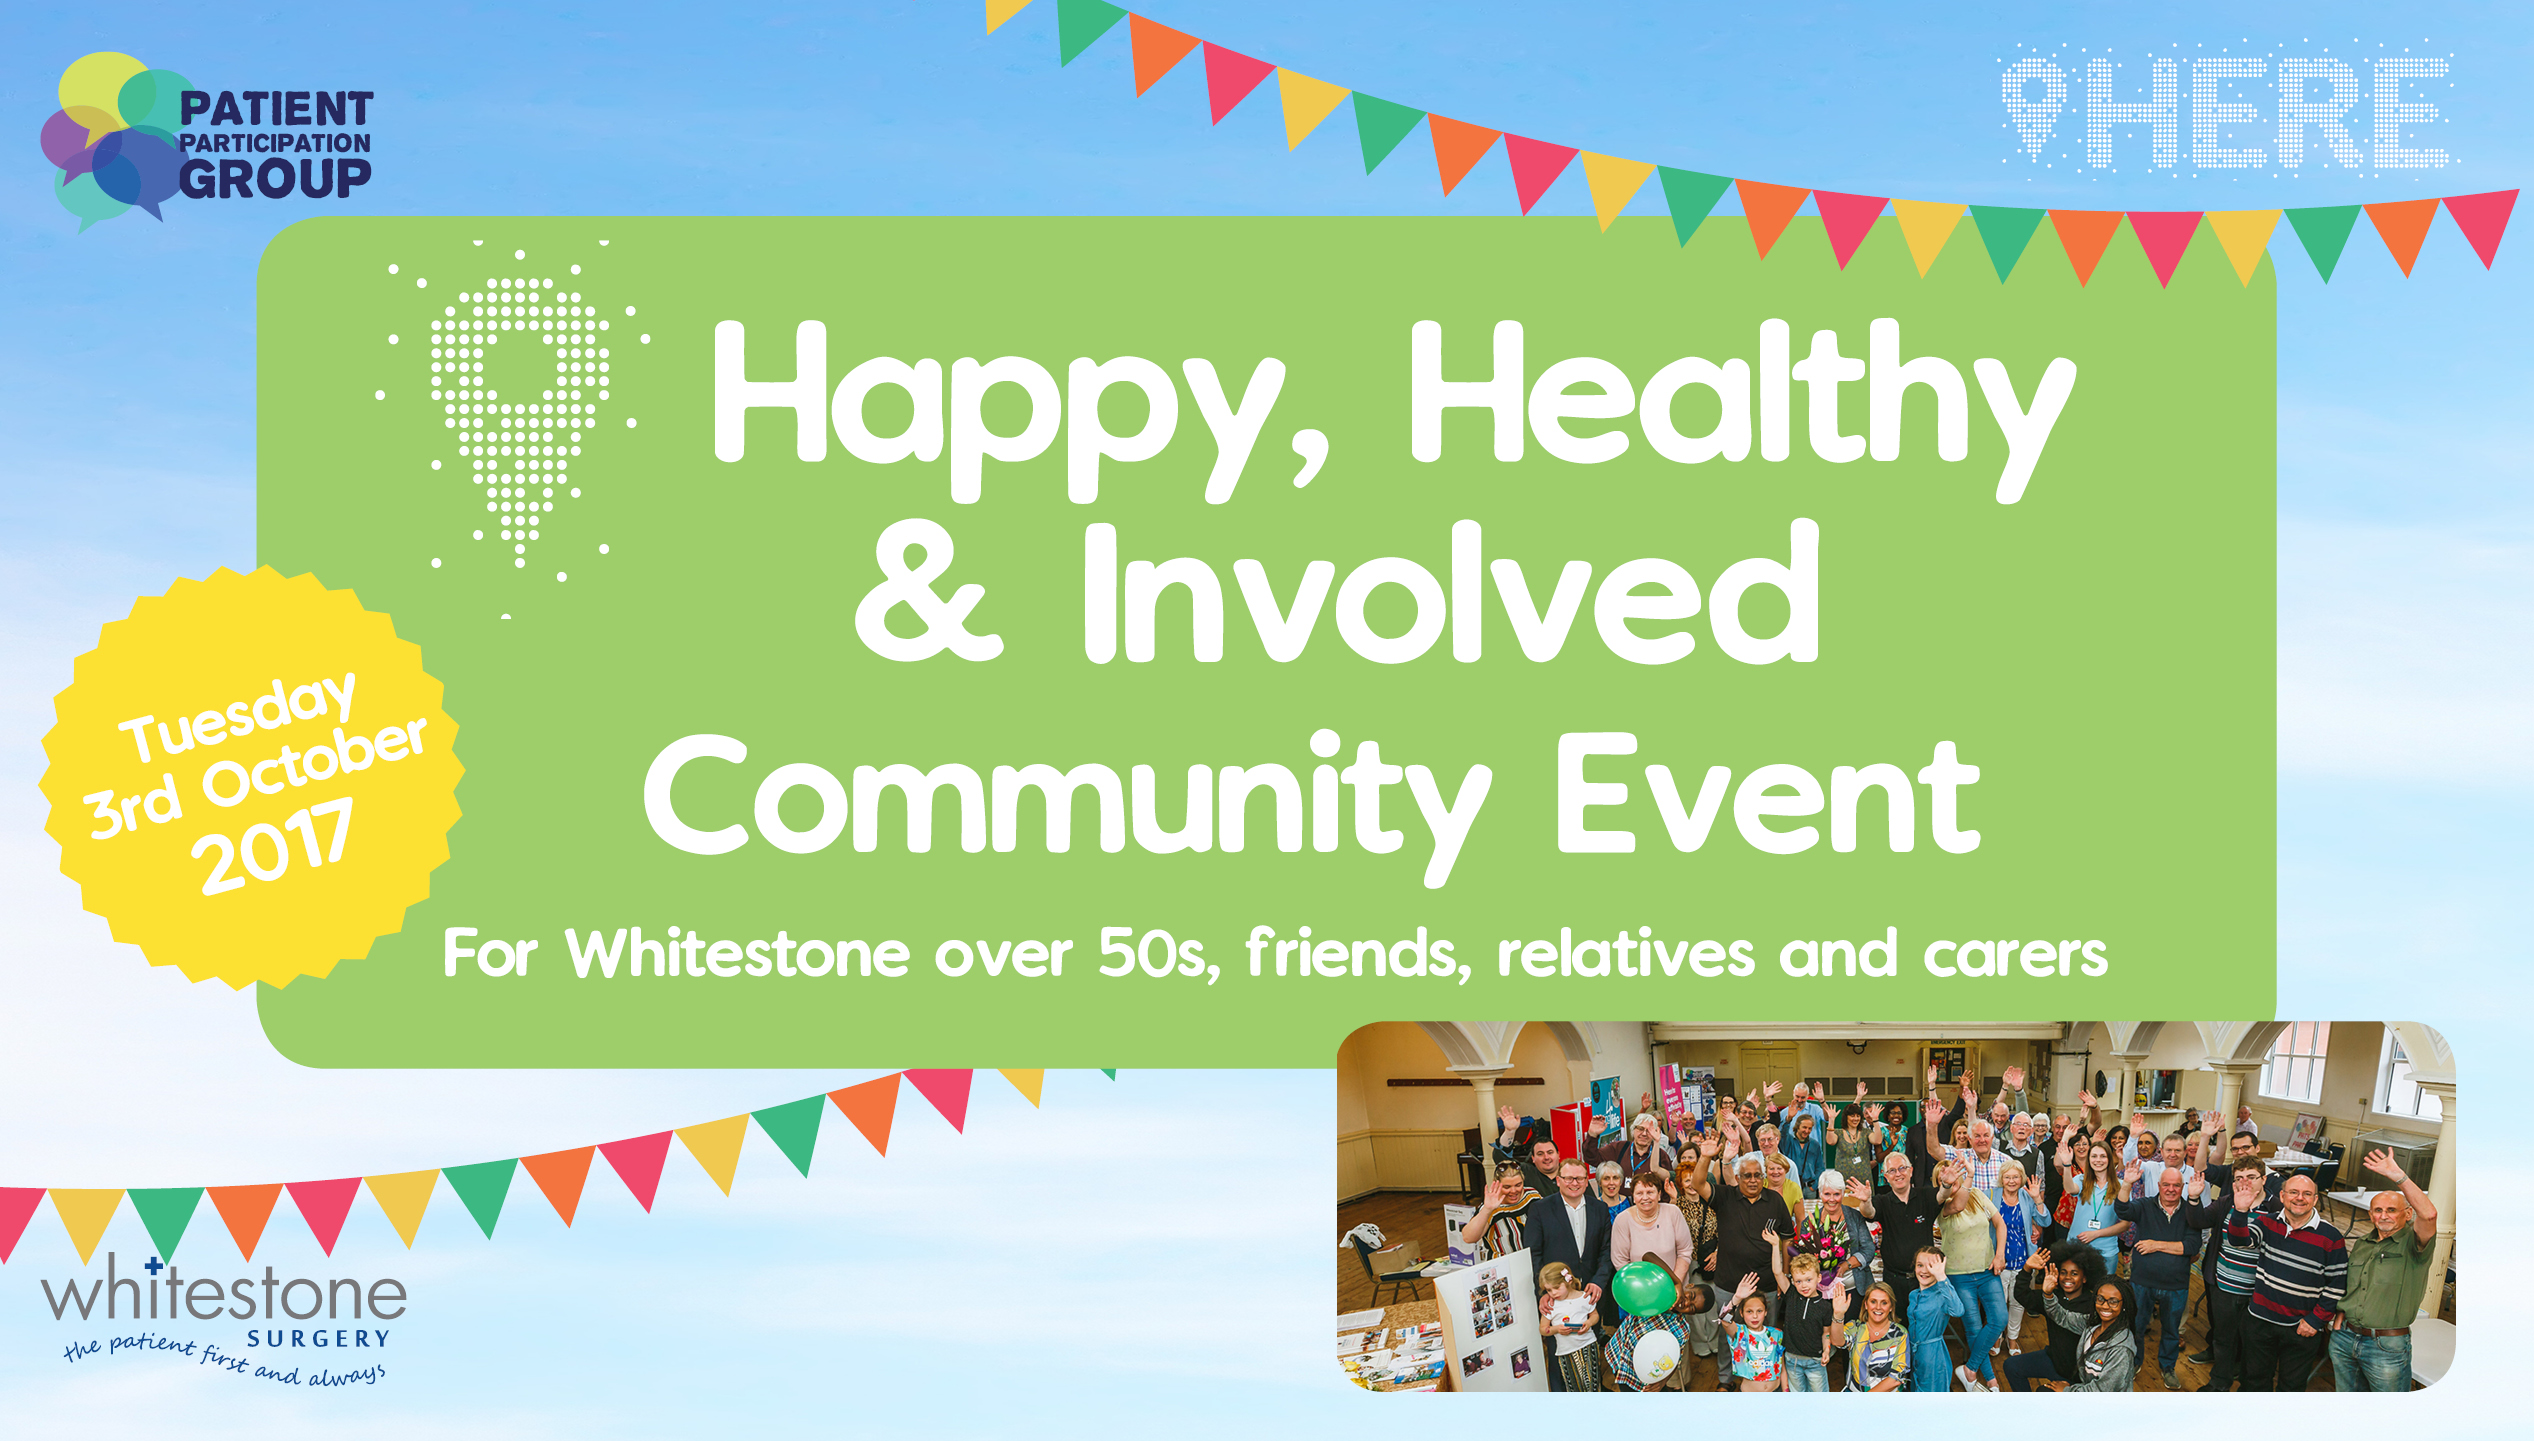 Happy Healthy and Involved Community Event